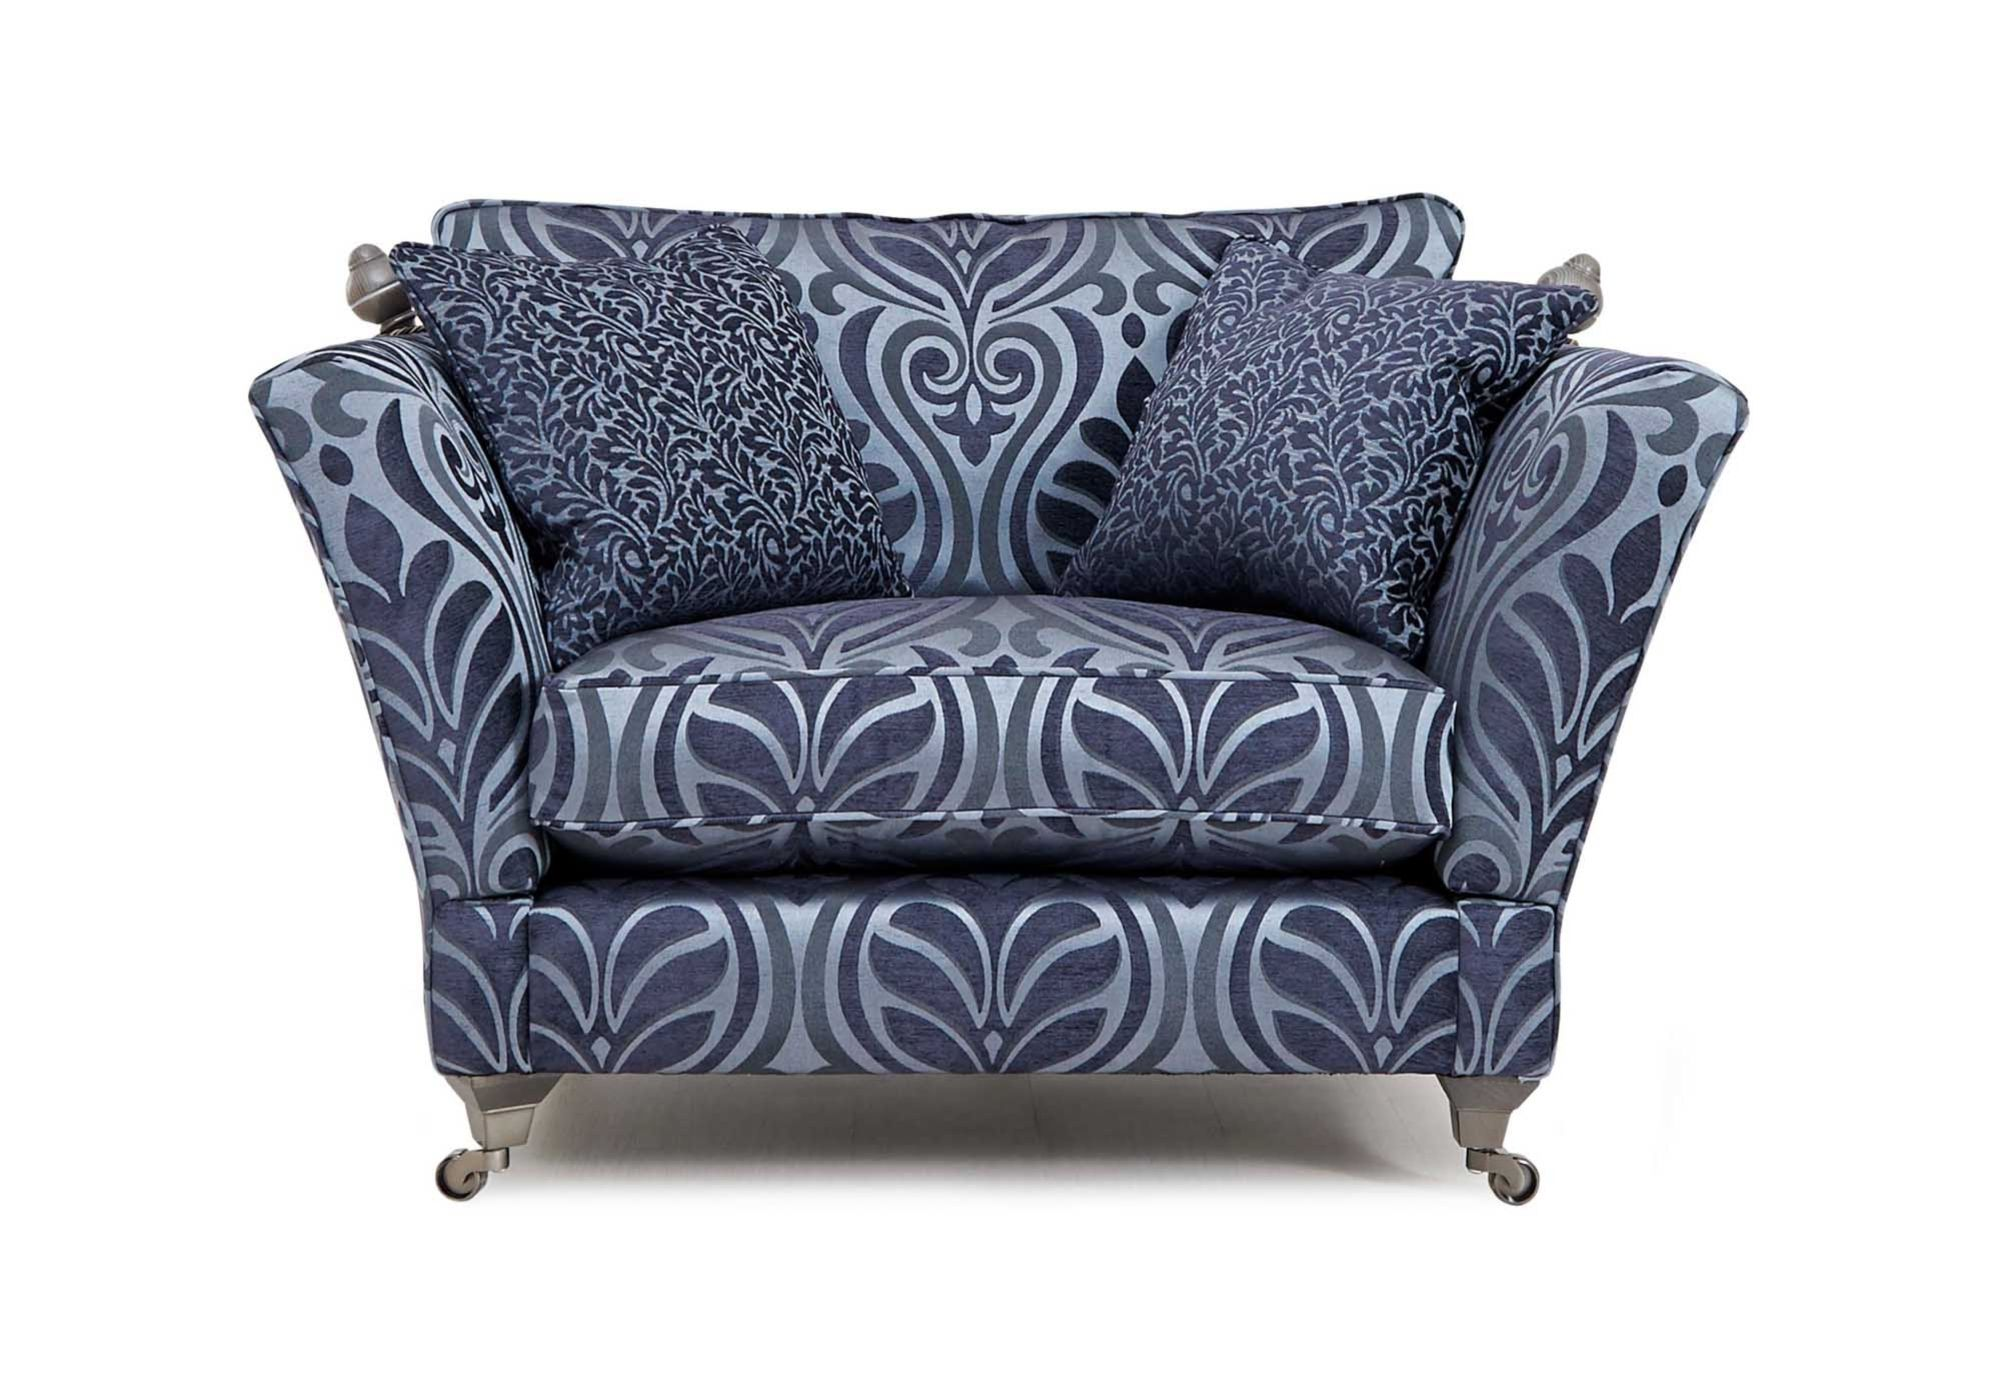 bedroom chairs furniture village chair bed with arms vantage snuggler knowle 995 pinterest